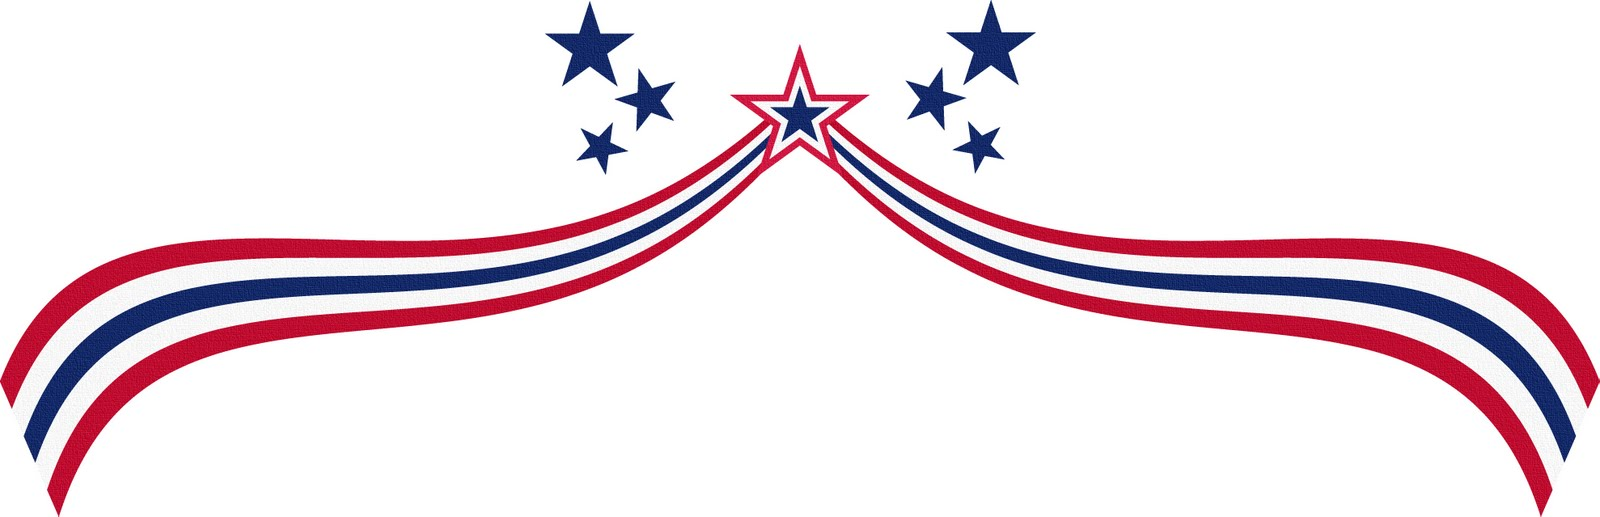 Free Clipart 4th Of July Borders School -Free Clipart 4th Of July Borders School Clipart-12